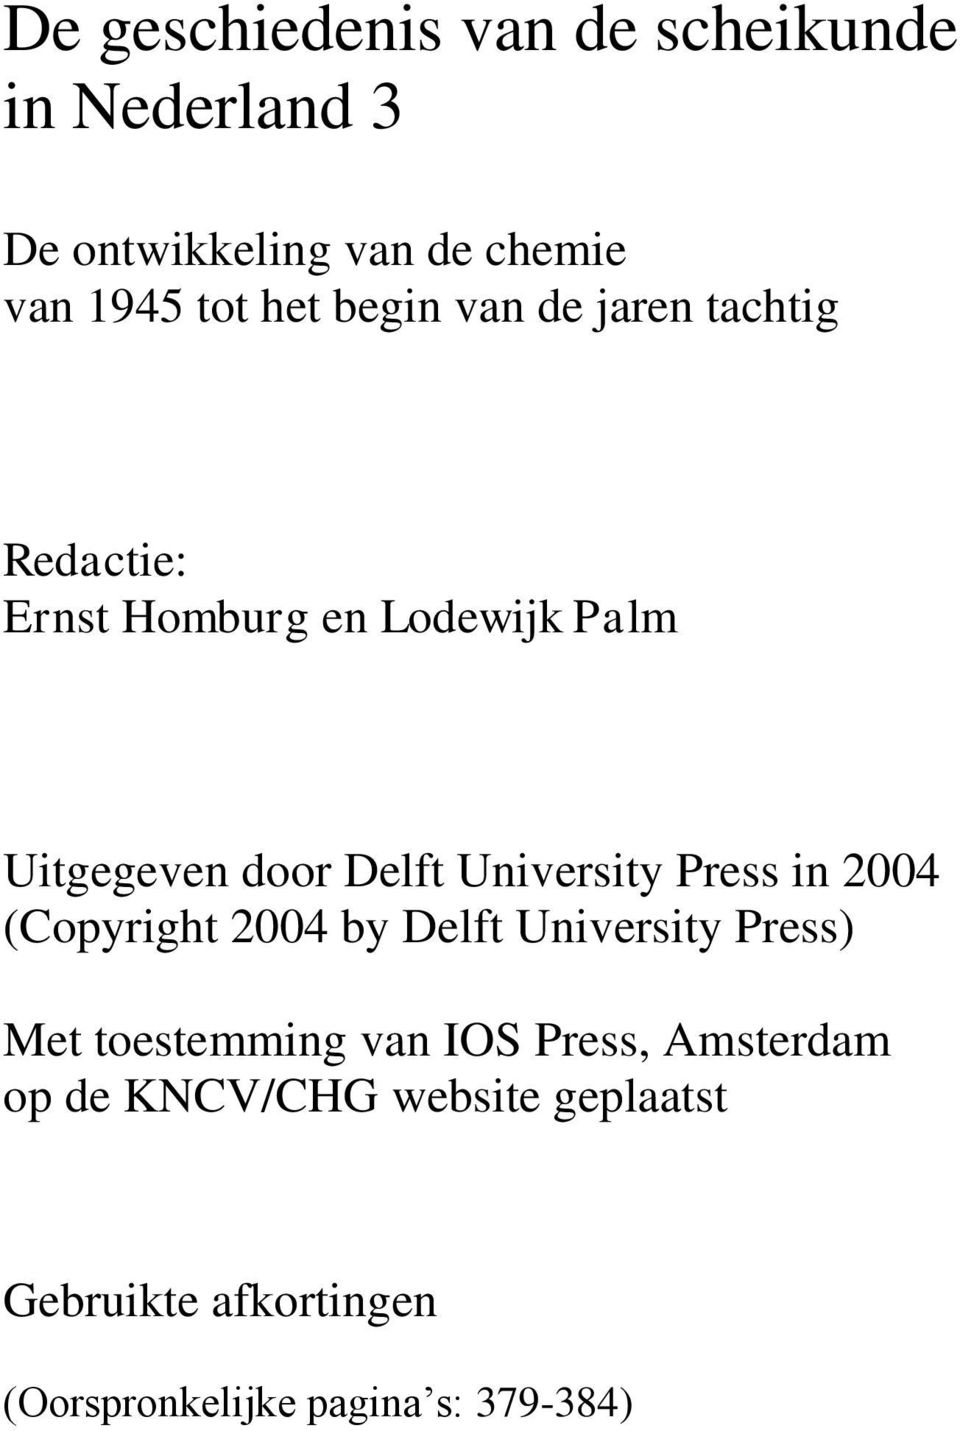 University Press in 2004 (Copyright 2004 by Delft University Press) Met toestemming van IOS